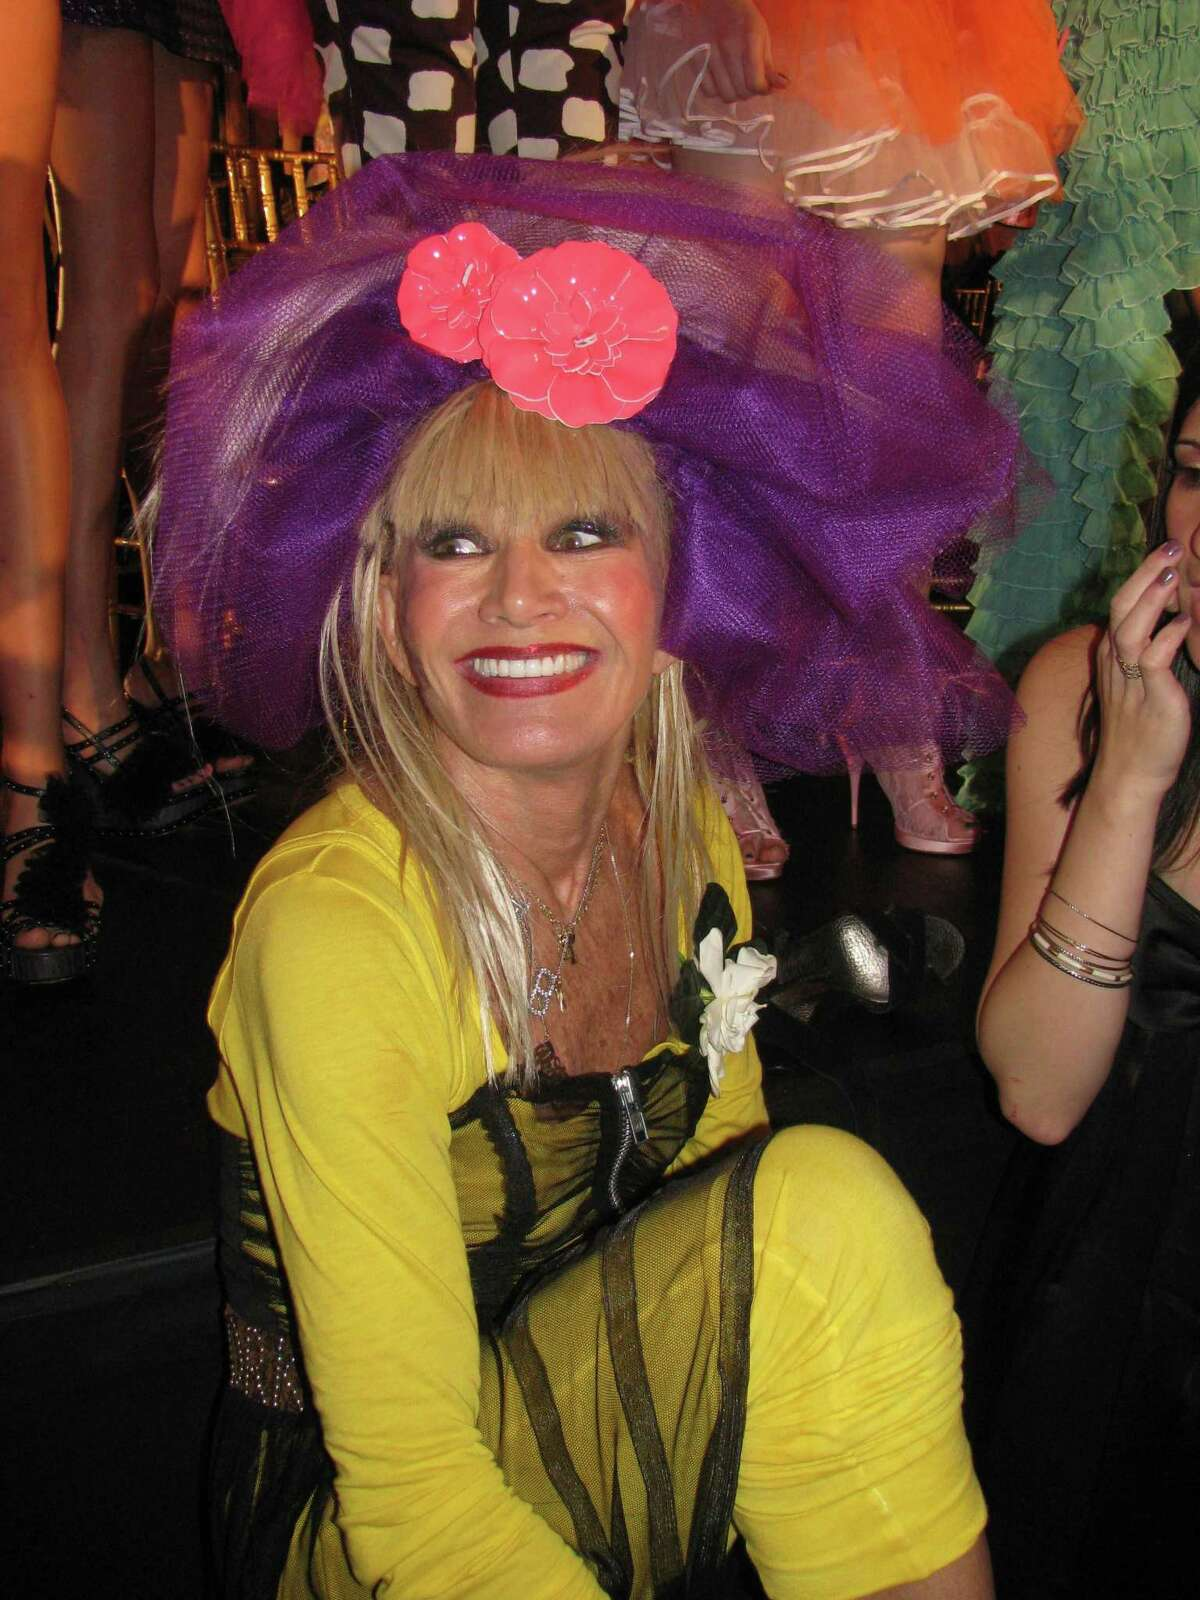 Fashion designer Betsey Johnson brought fun - and cupcakes - to her runway show at Bryant Park.